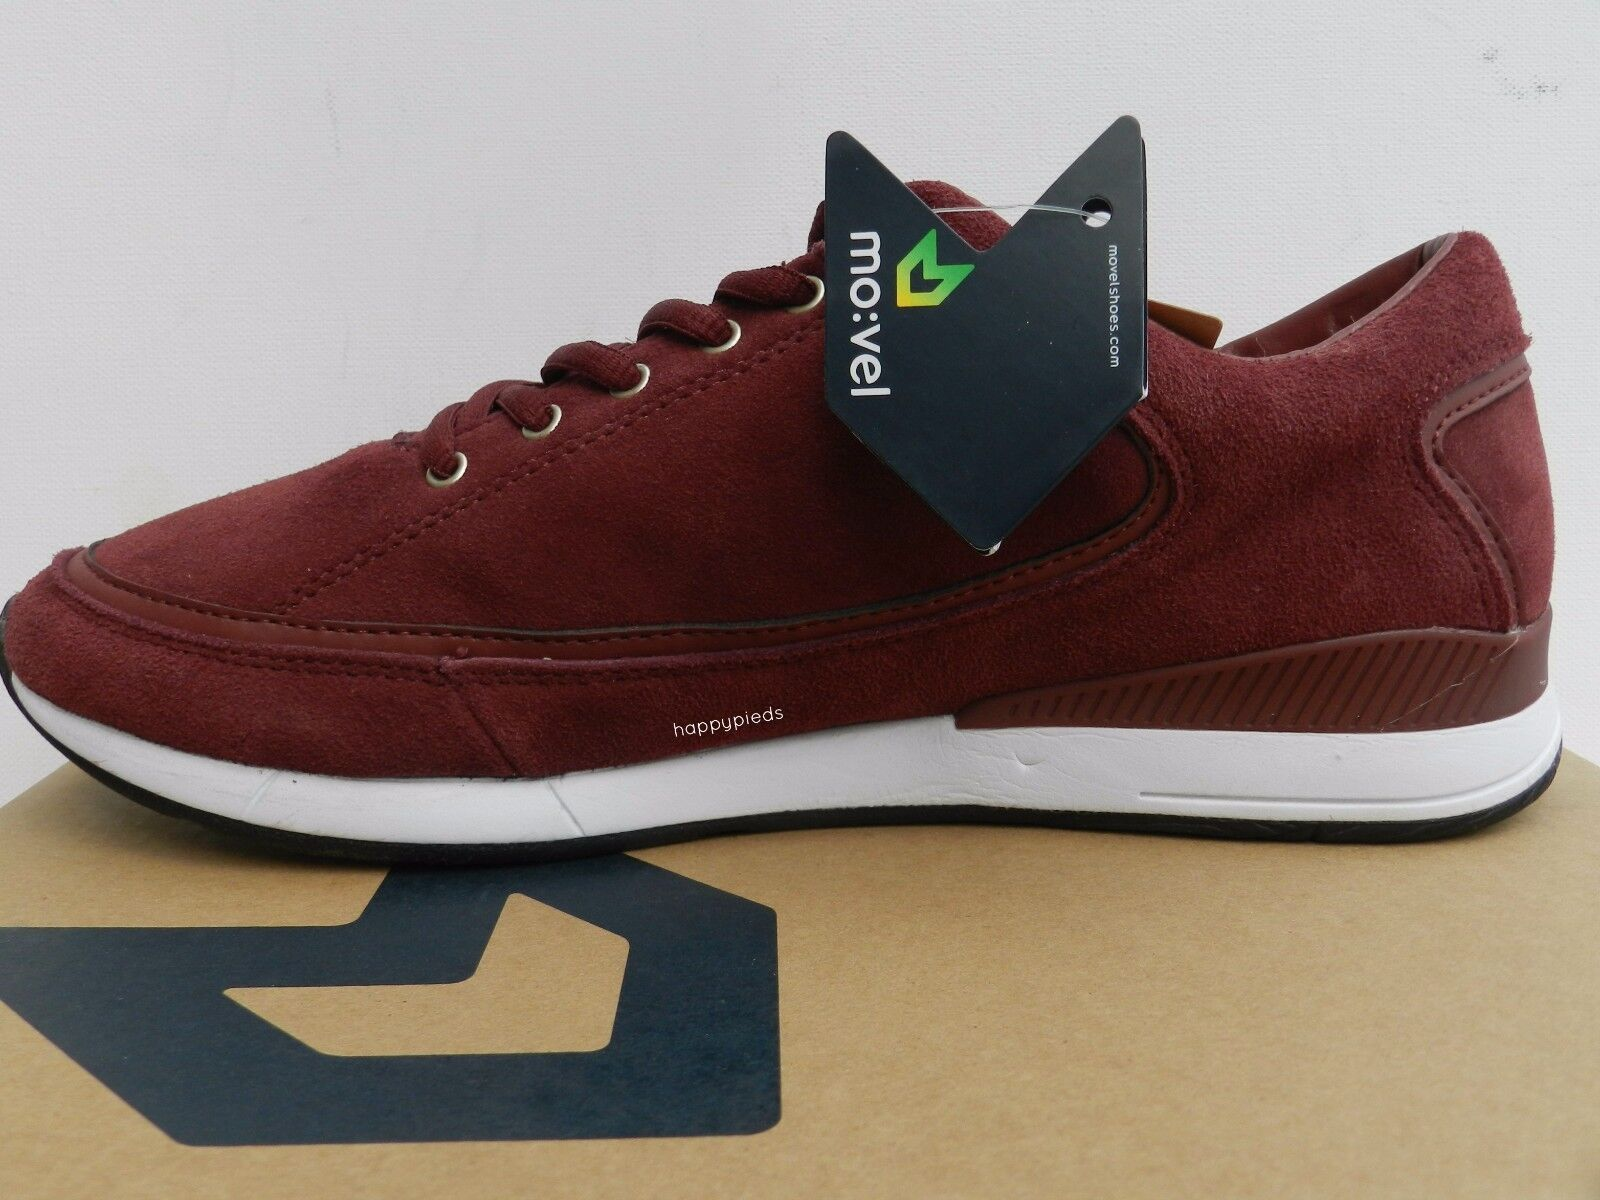 Movel Sao Paulo Trainers Zapatos Hombre 41 Baskets Tennis Cuir Trainers Paulo Jogger Mo:vel d19b1c